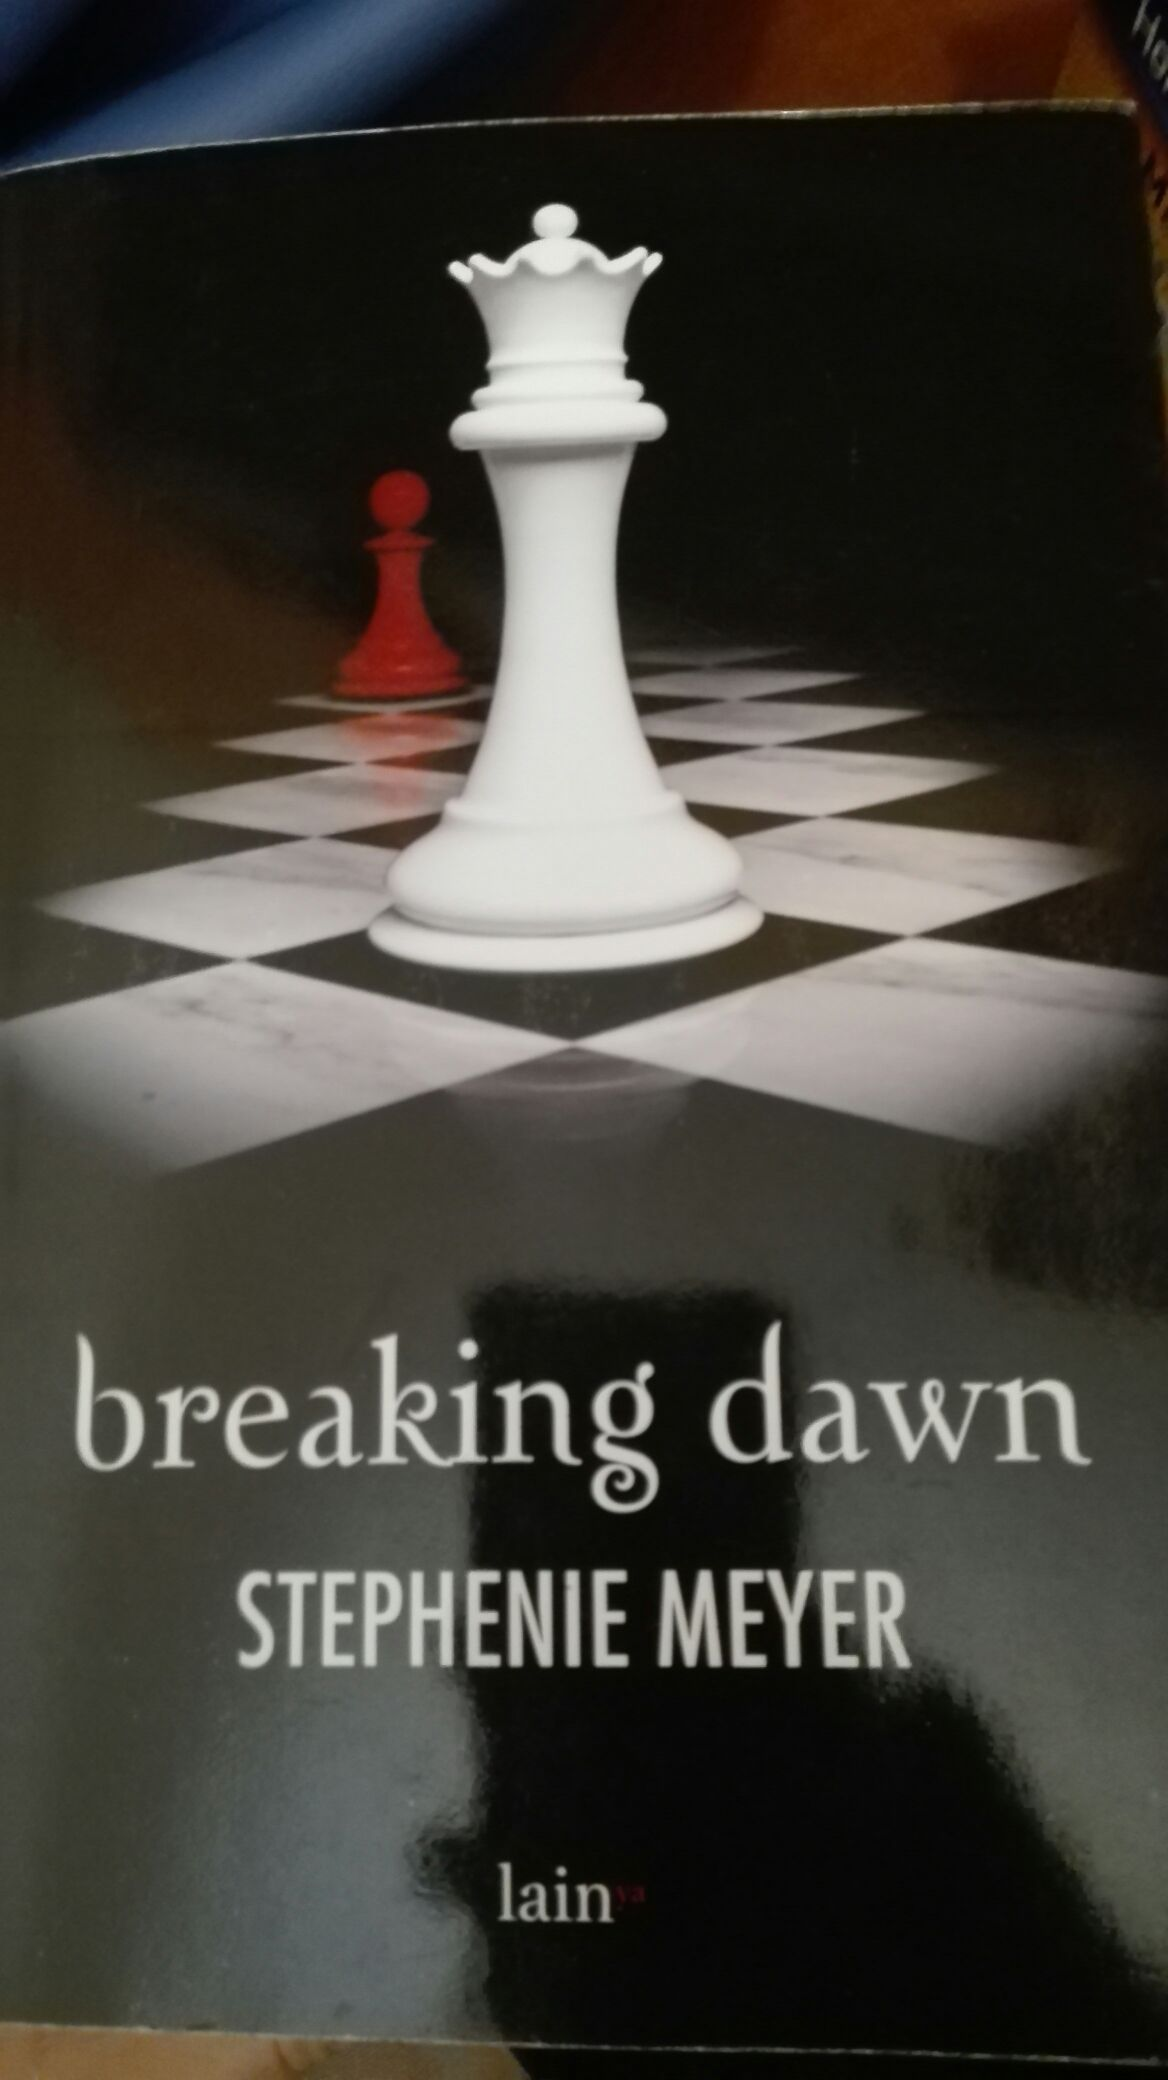 Breaking Dawn Book front image (front cover)